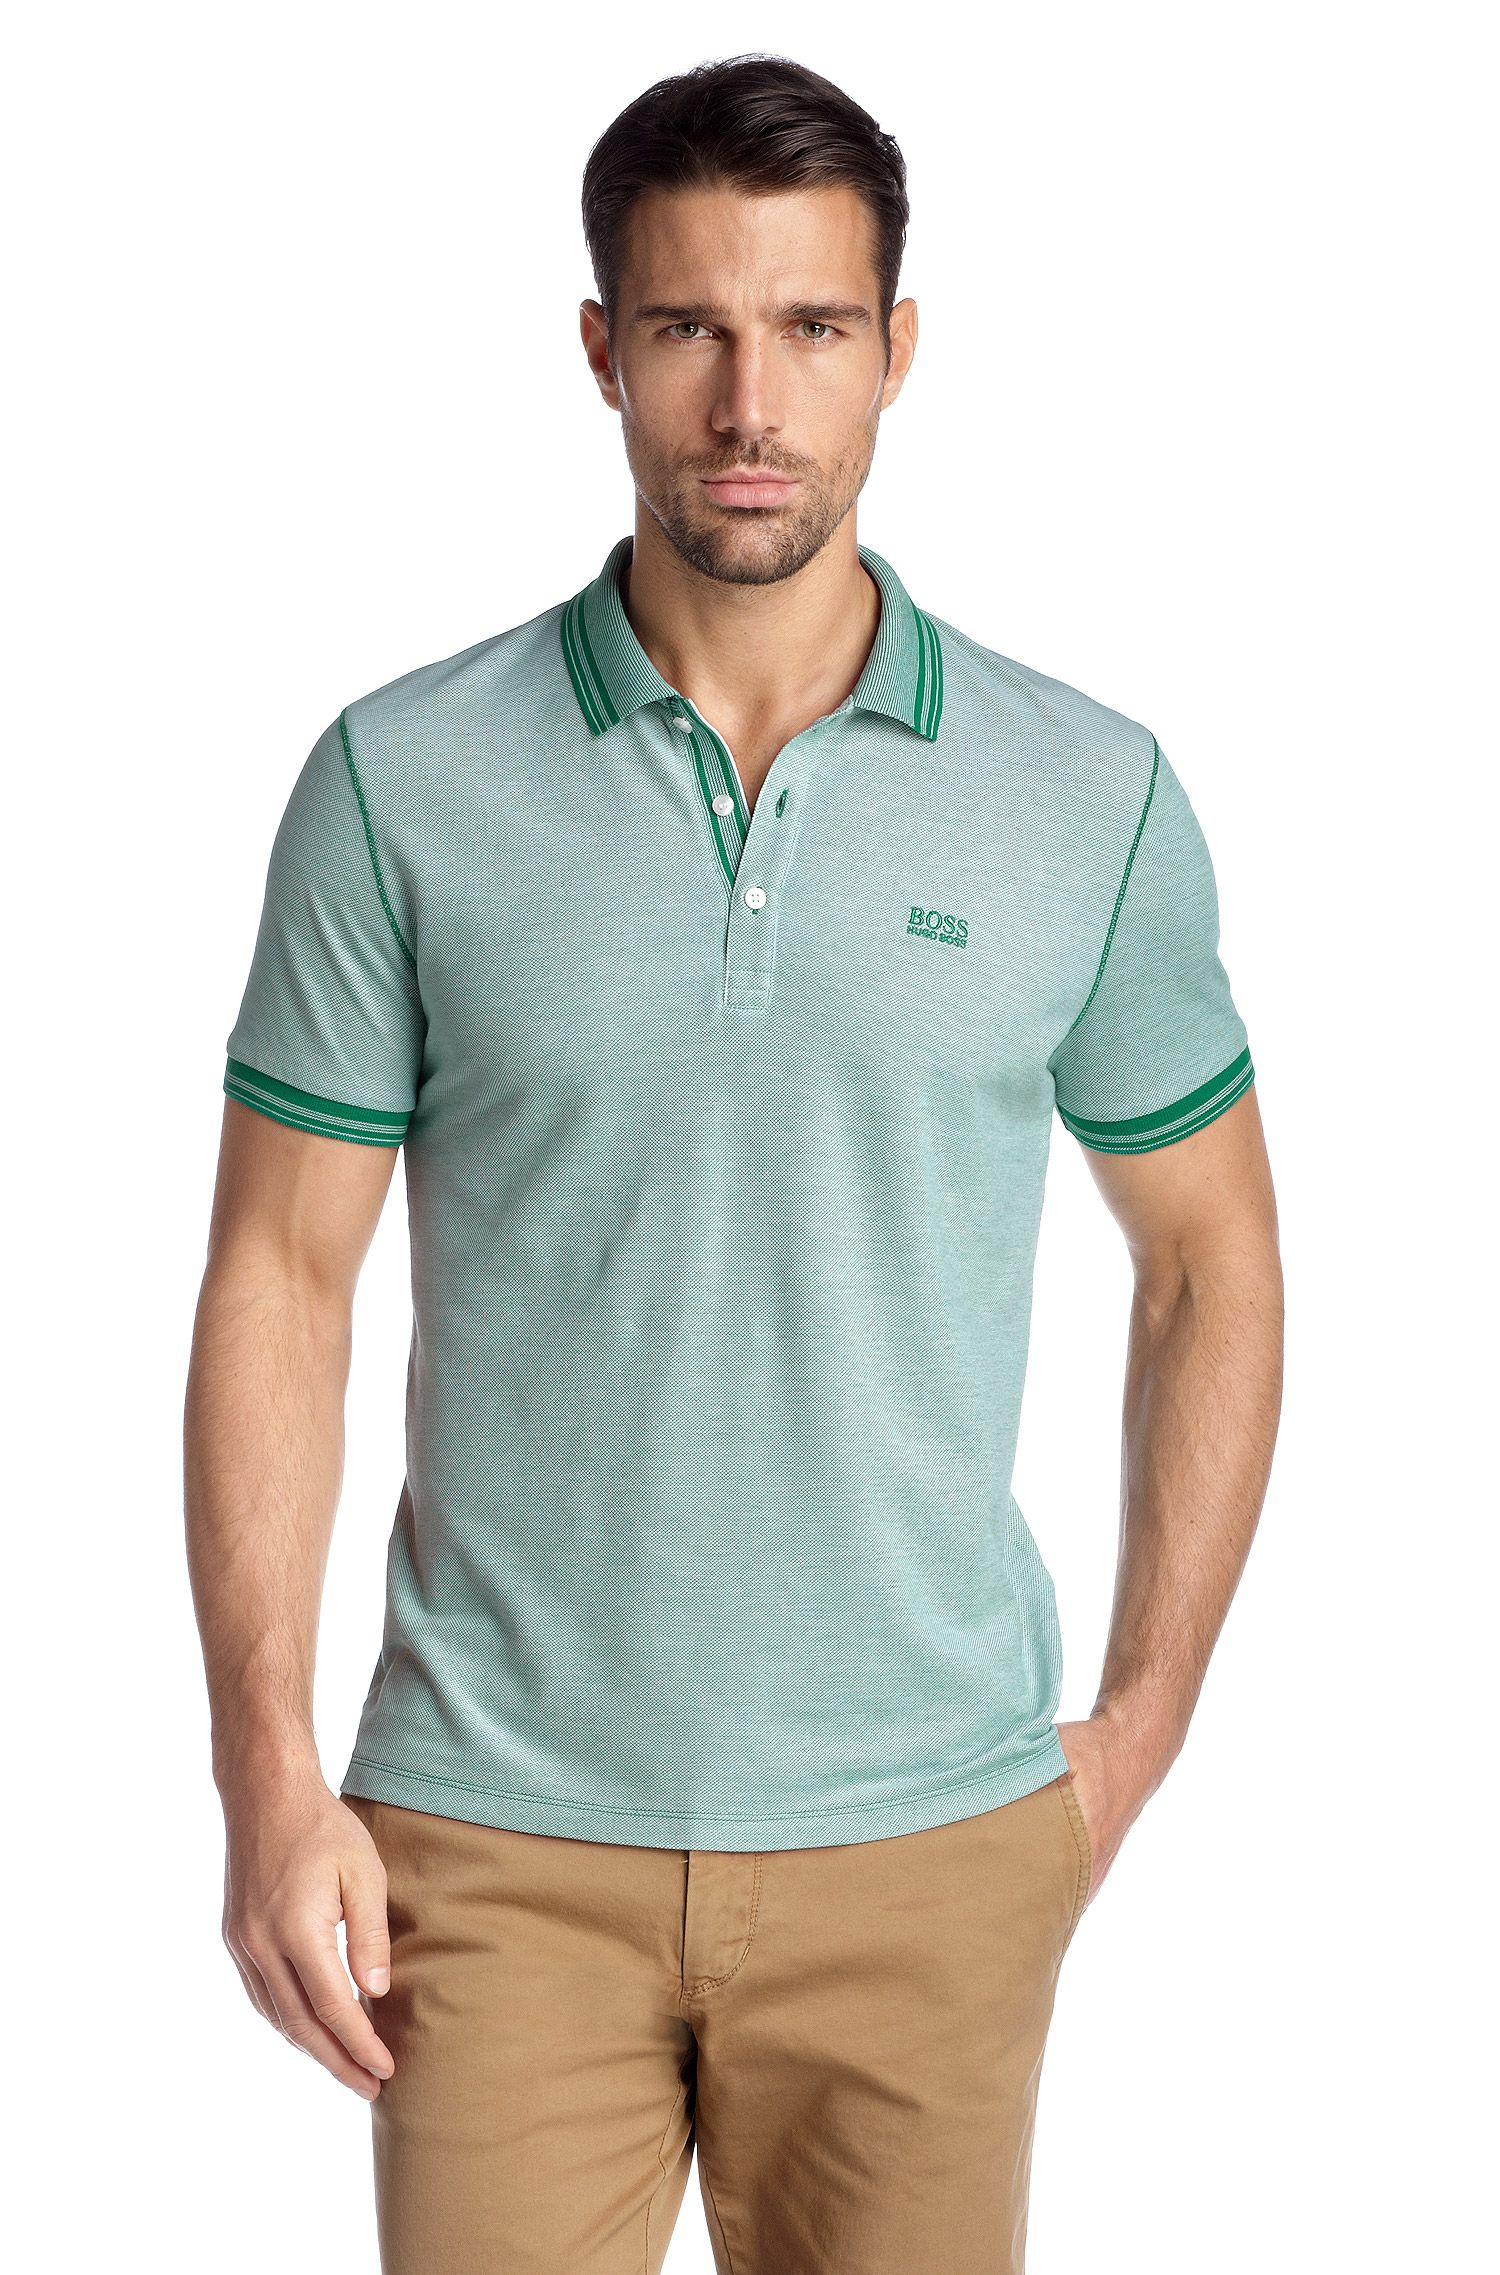 Regular-Fit Polo ´Bugnara 05 Modern Essential`